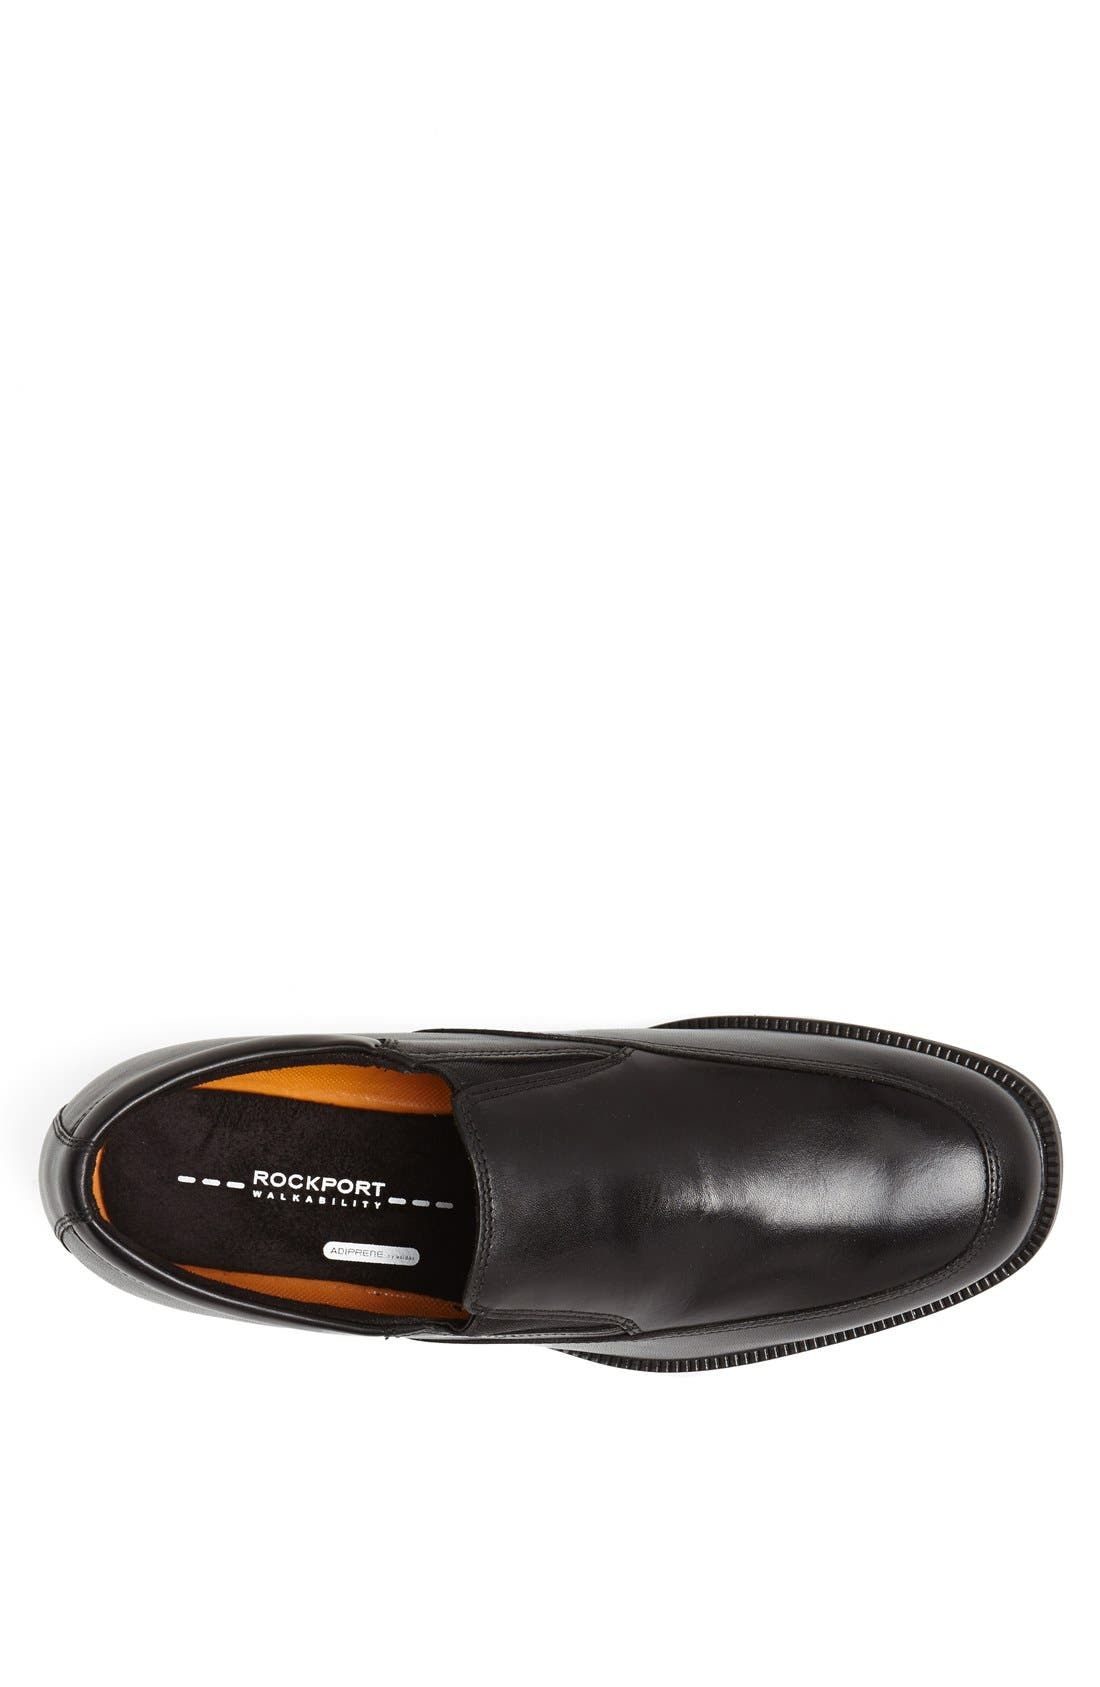 'Essential Details' Waterproof Loafer,                             Alternate thumbnail 6, color,                             BLACK